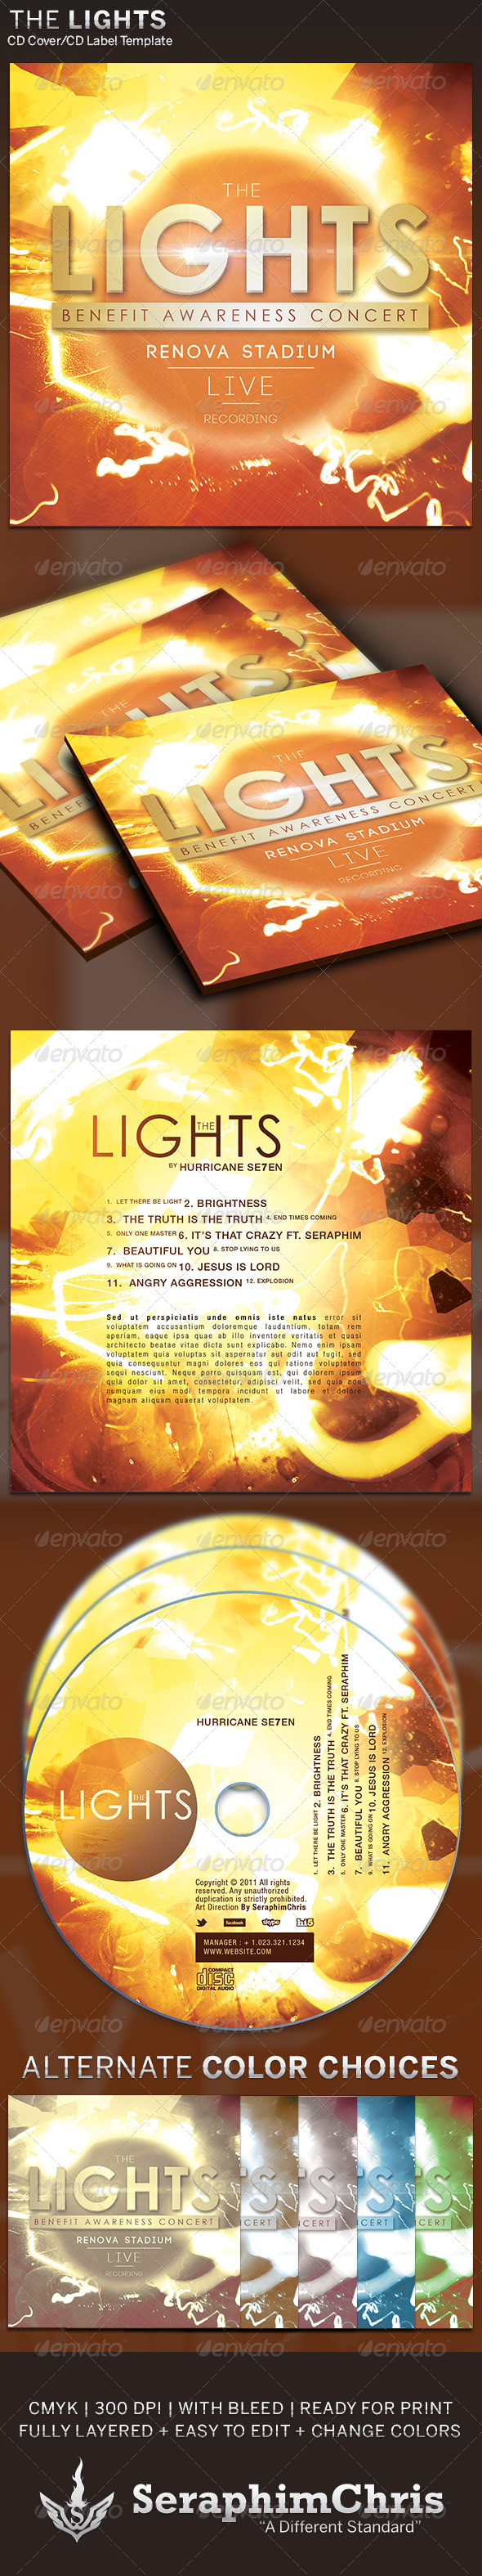 The Lights CD Cover Artwork Template - CD & DVD artwork Print Templates